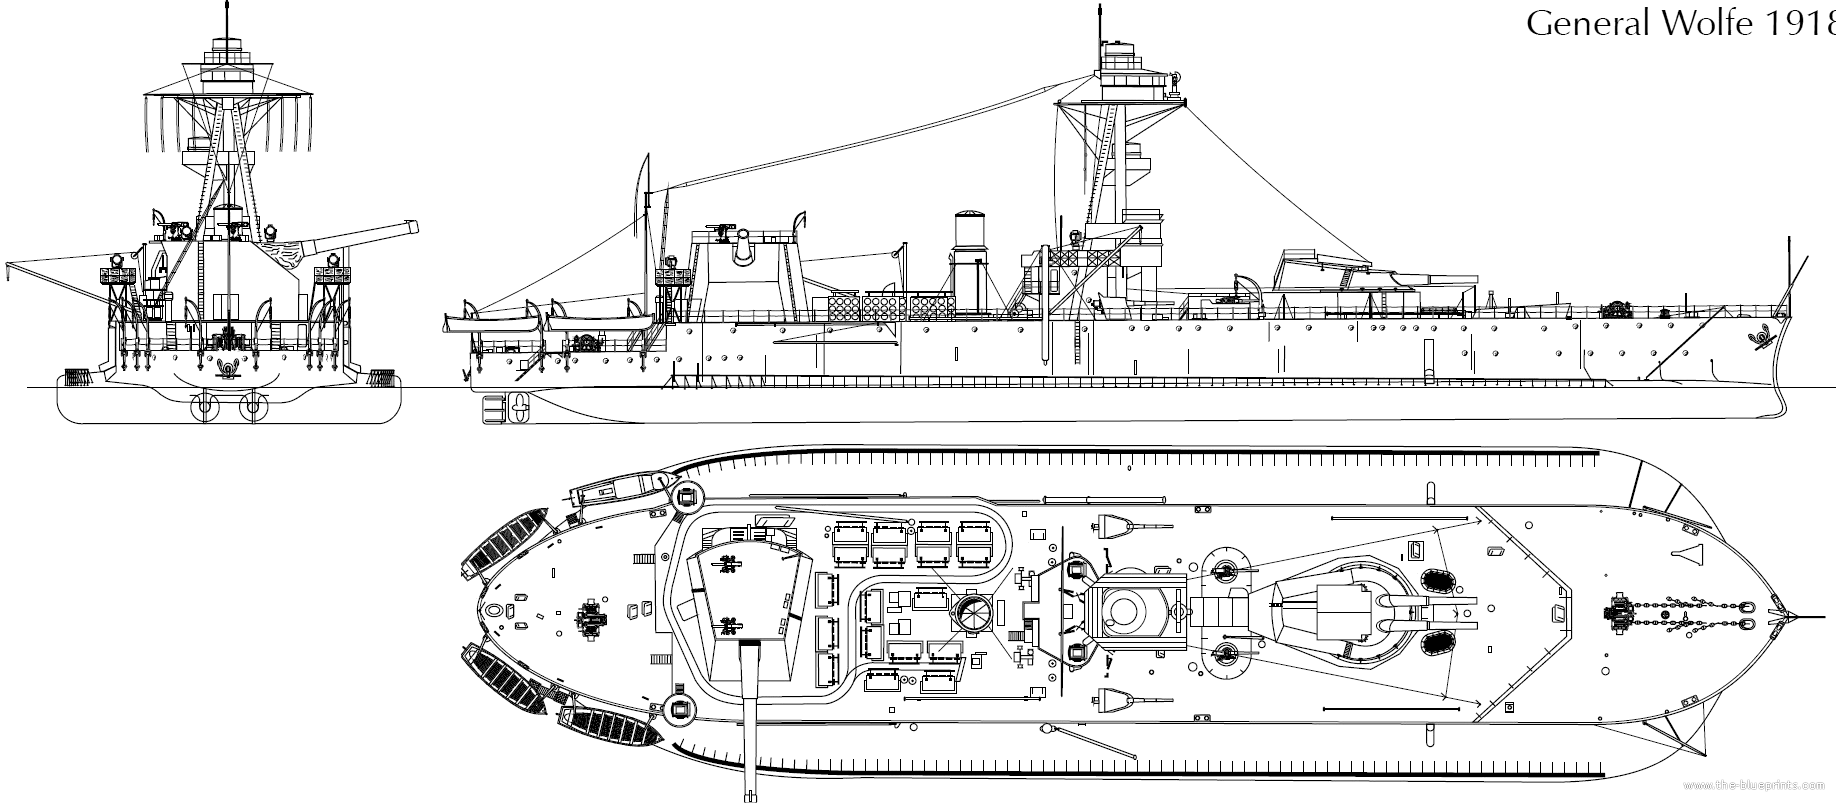 hms-general-wolfe-1918-monitor.png